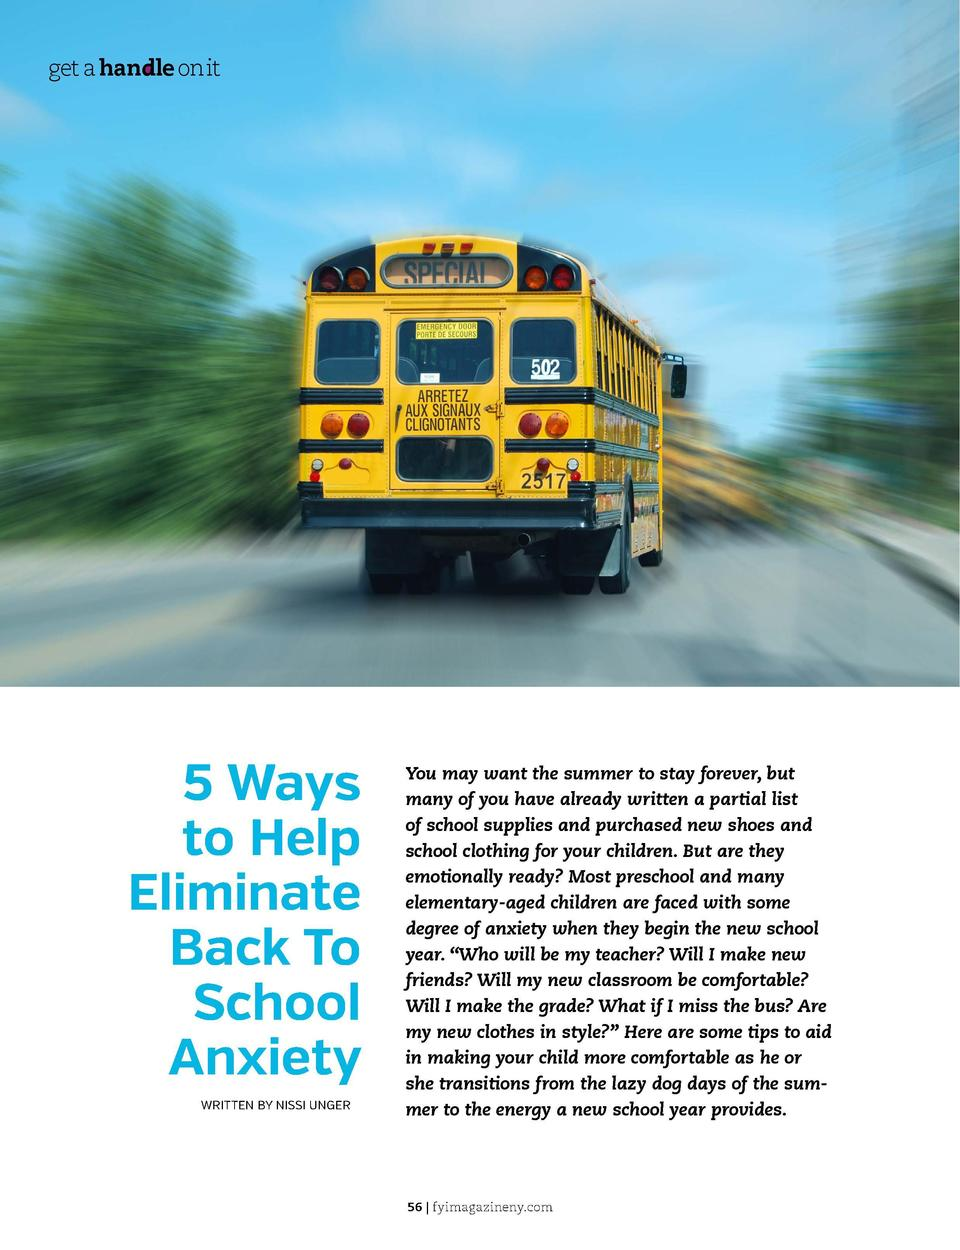 get a handle on it  get a handle on it  1. REMOVE THE FEAR OF THE UNKNOWN  5 Ways to Help Eliminate Back To School Anxiety...